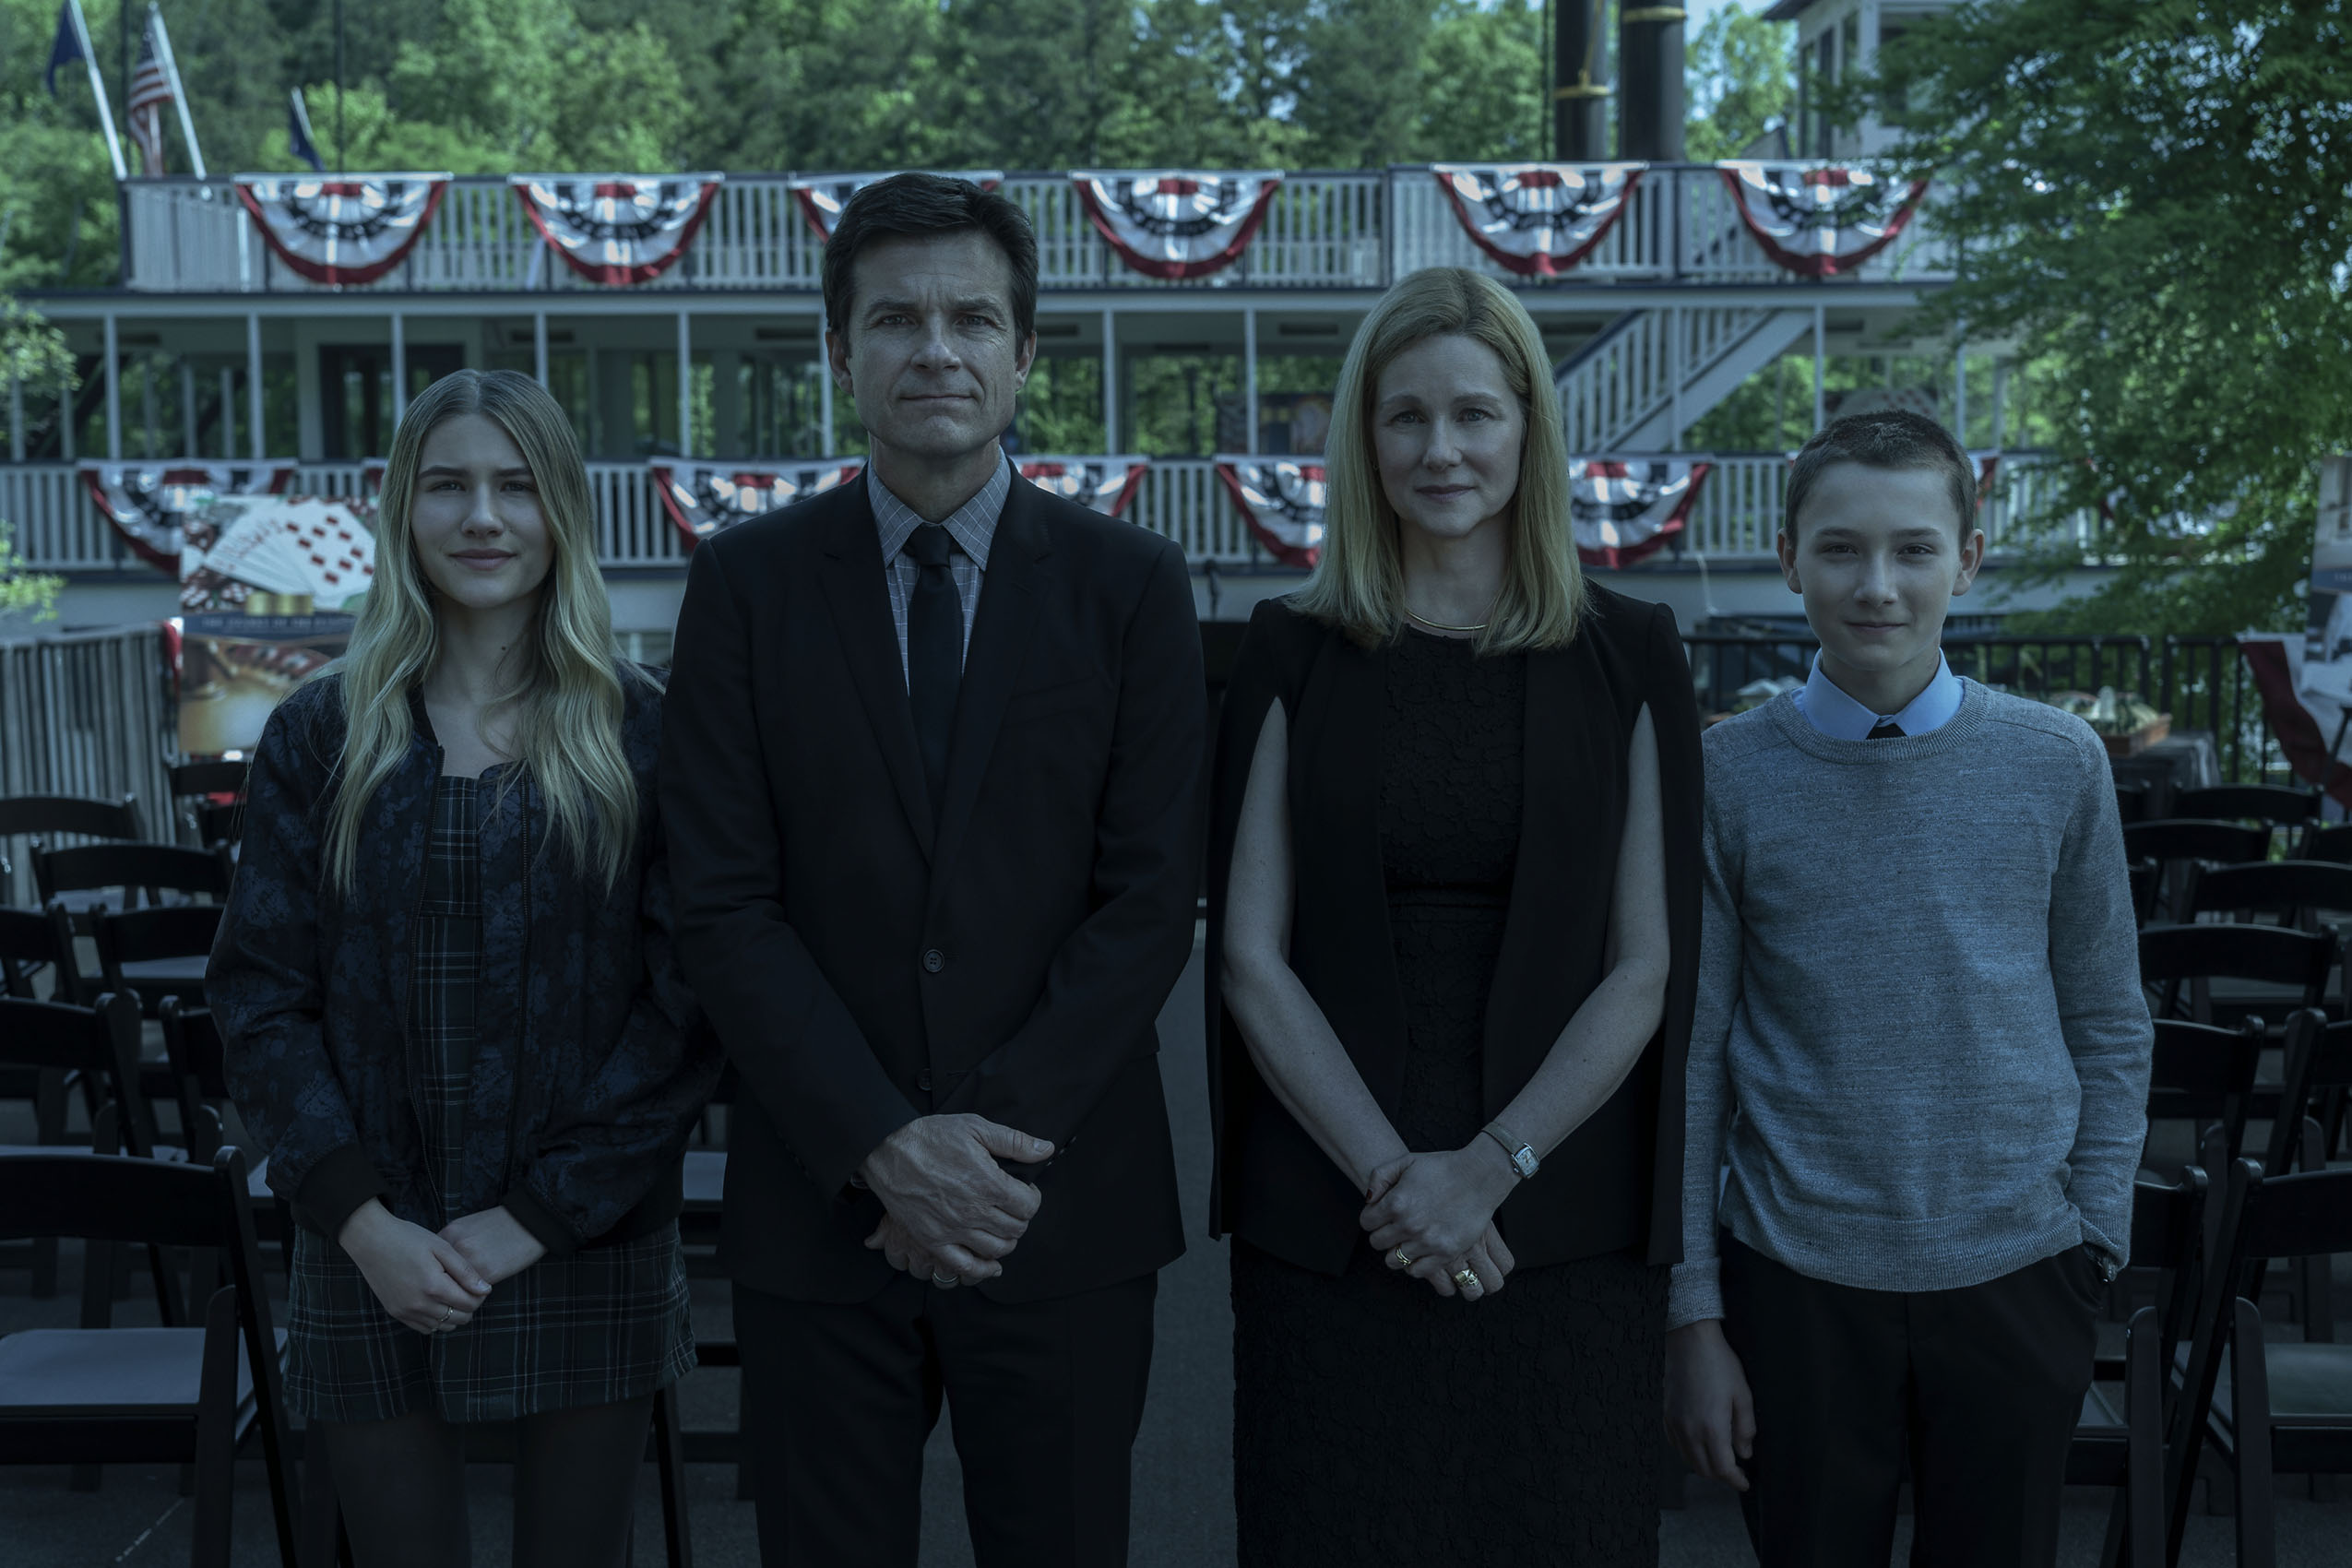 Ozark Season 4 is about to be released in Spring 2021